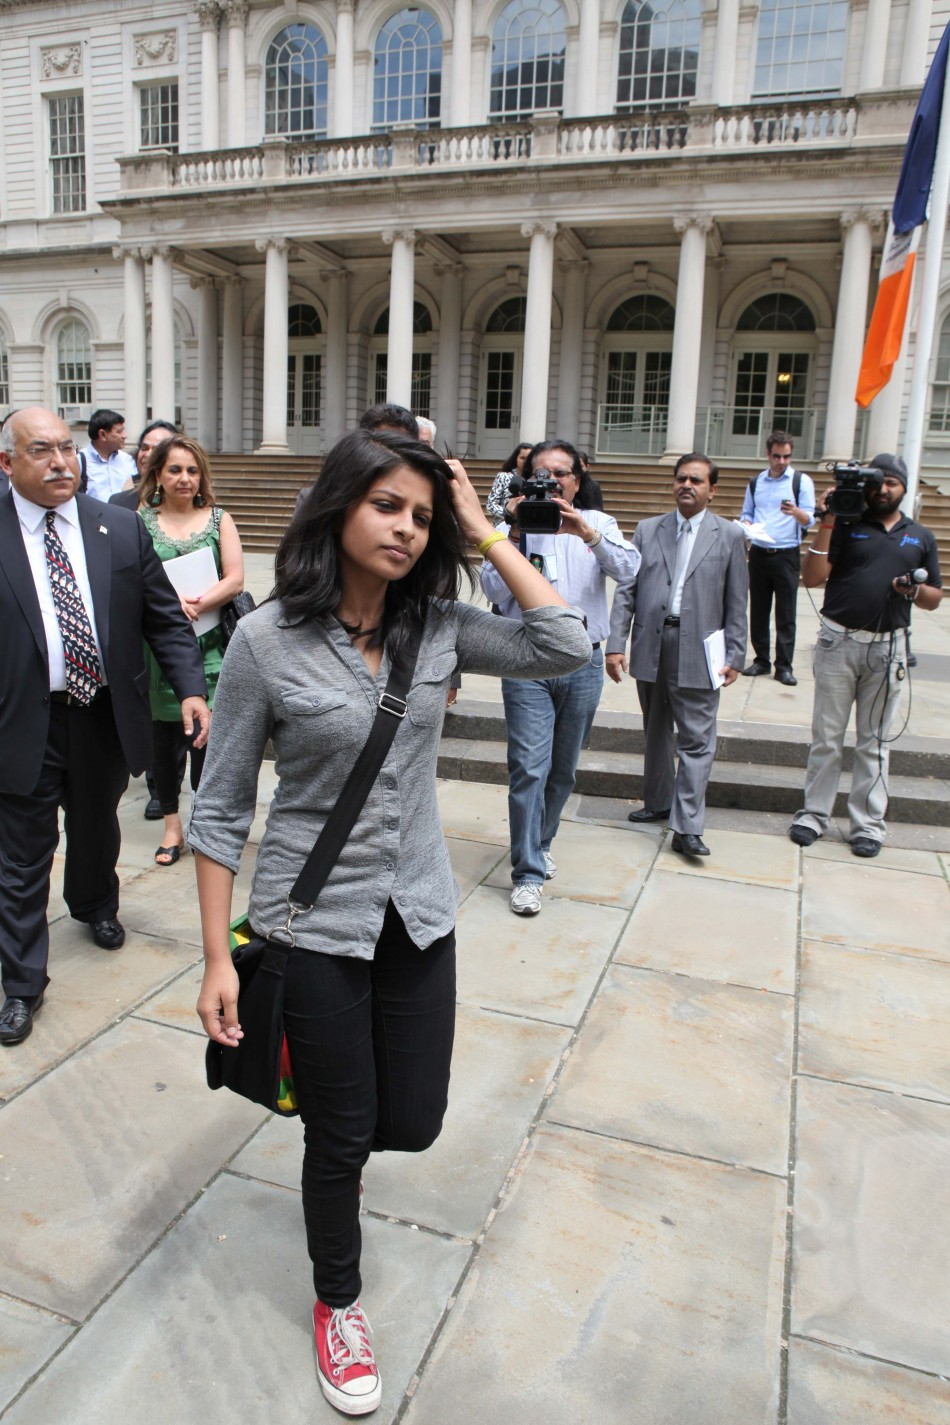 Indian-girl-Krittika-Biswas-arrested-abused-tortured-humiliated-NYPD-NewYork-Jail-handcuff-prison